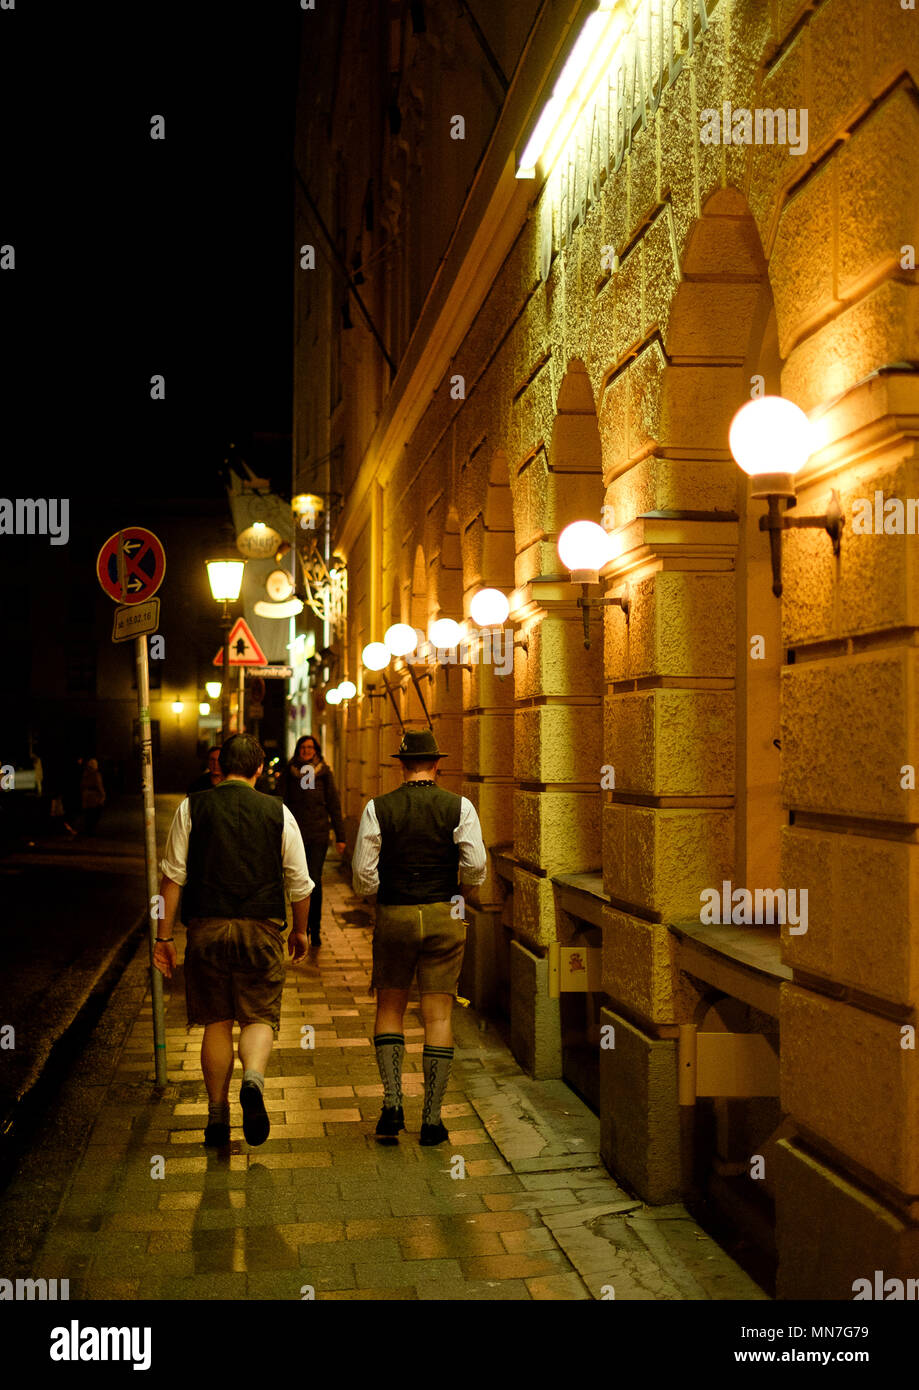 Two men in lederhosen on the streets of the old town Munich at night - Stock Image